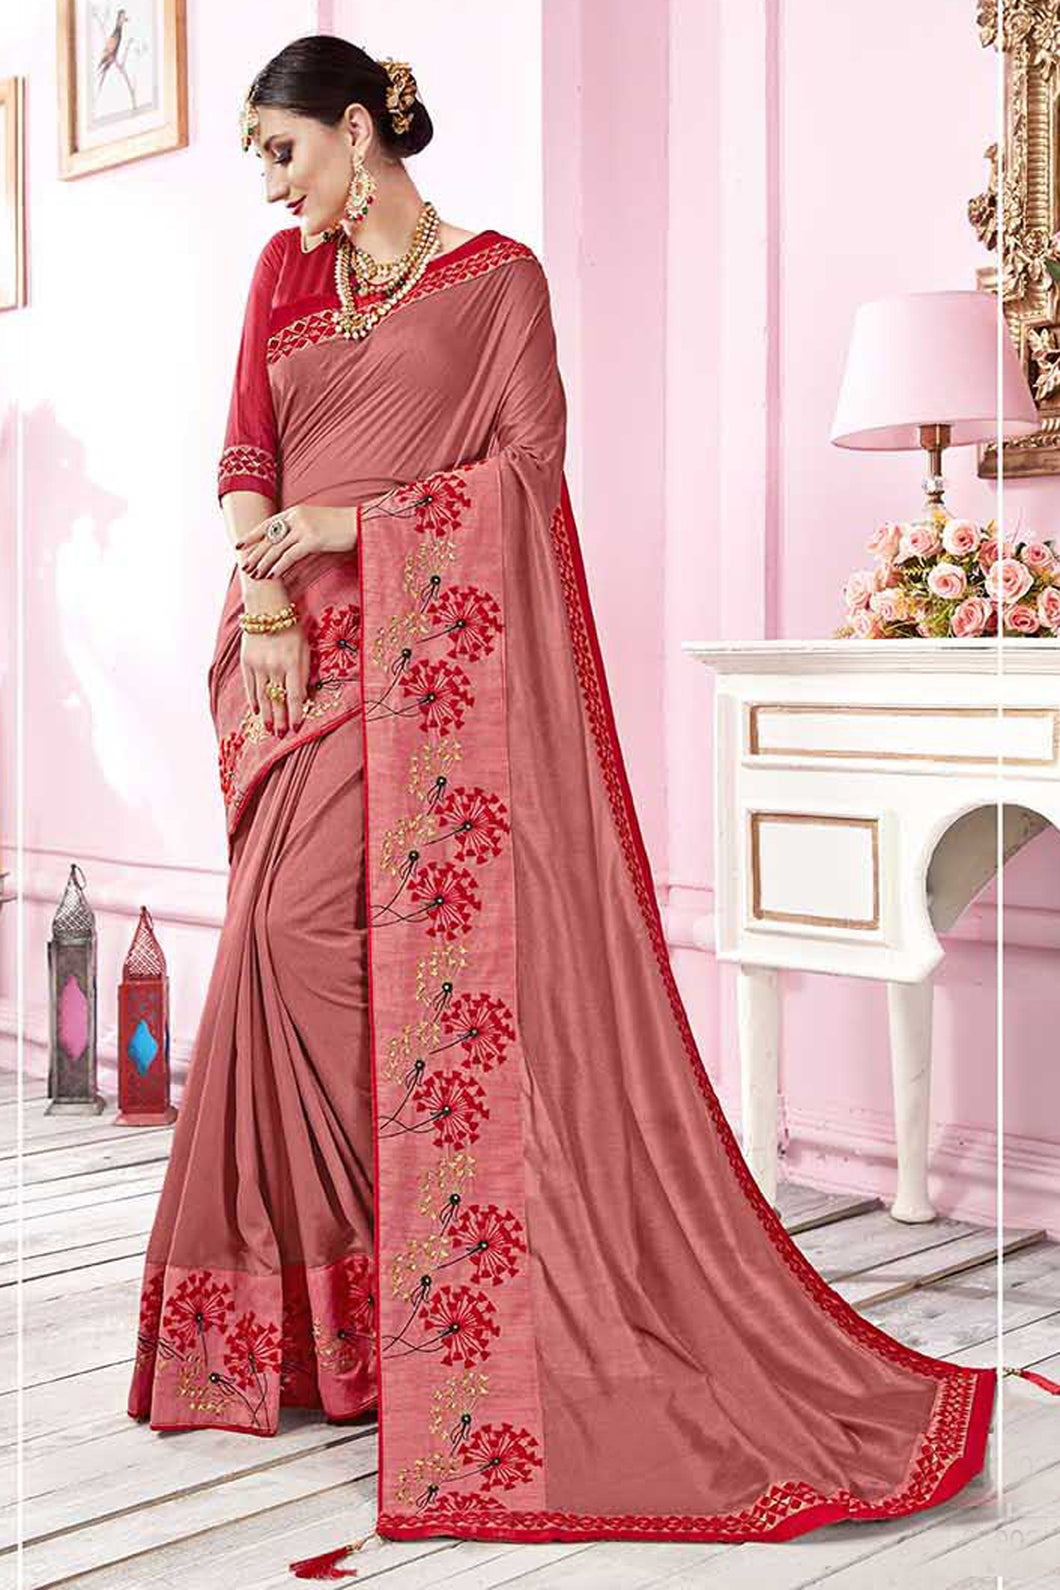 Bhelpuri Peach Satin Georgette Embroidered Lace Border Saree with Blouse Piece